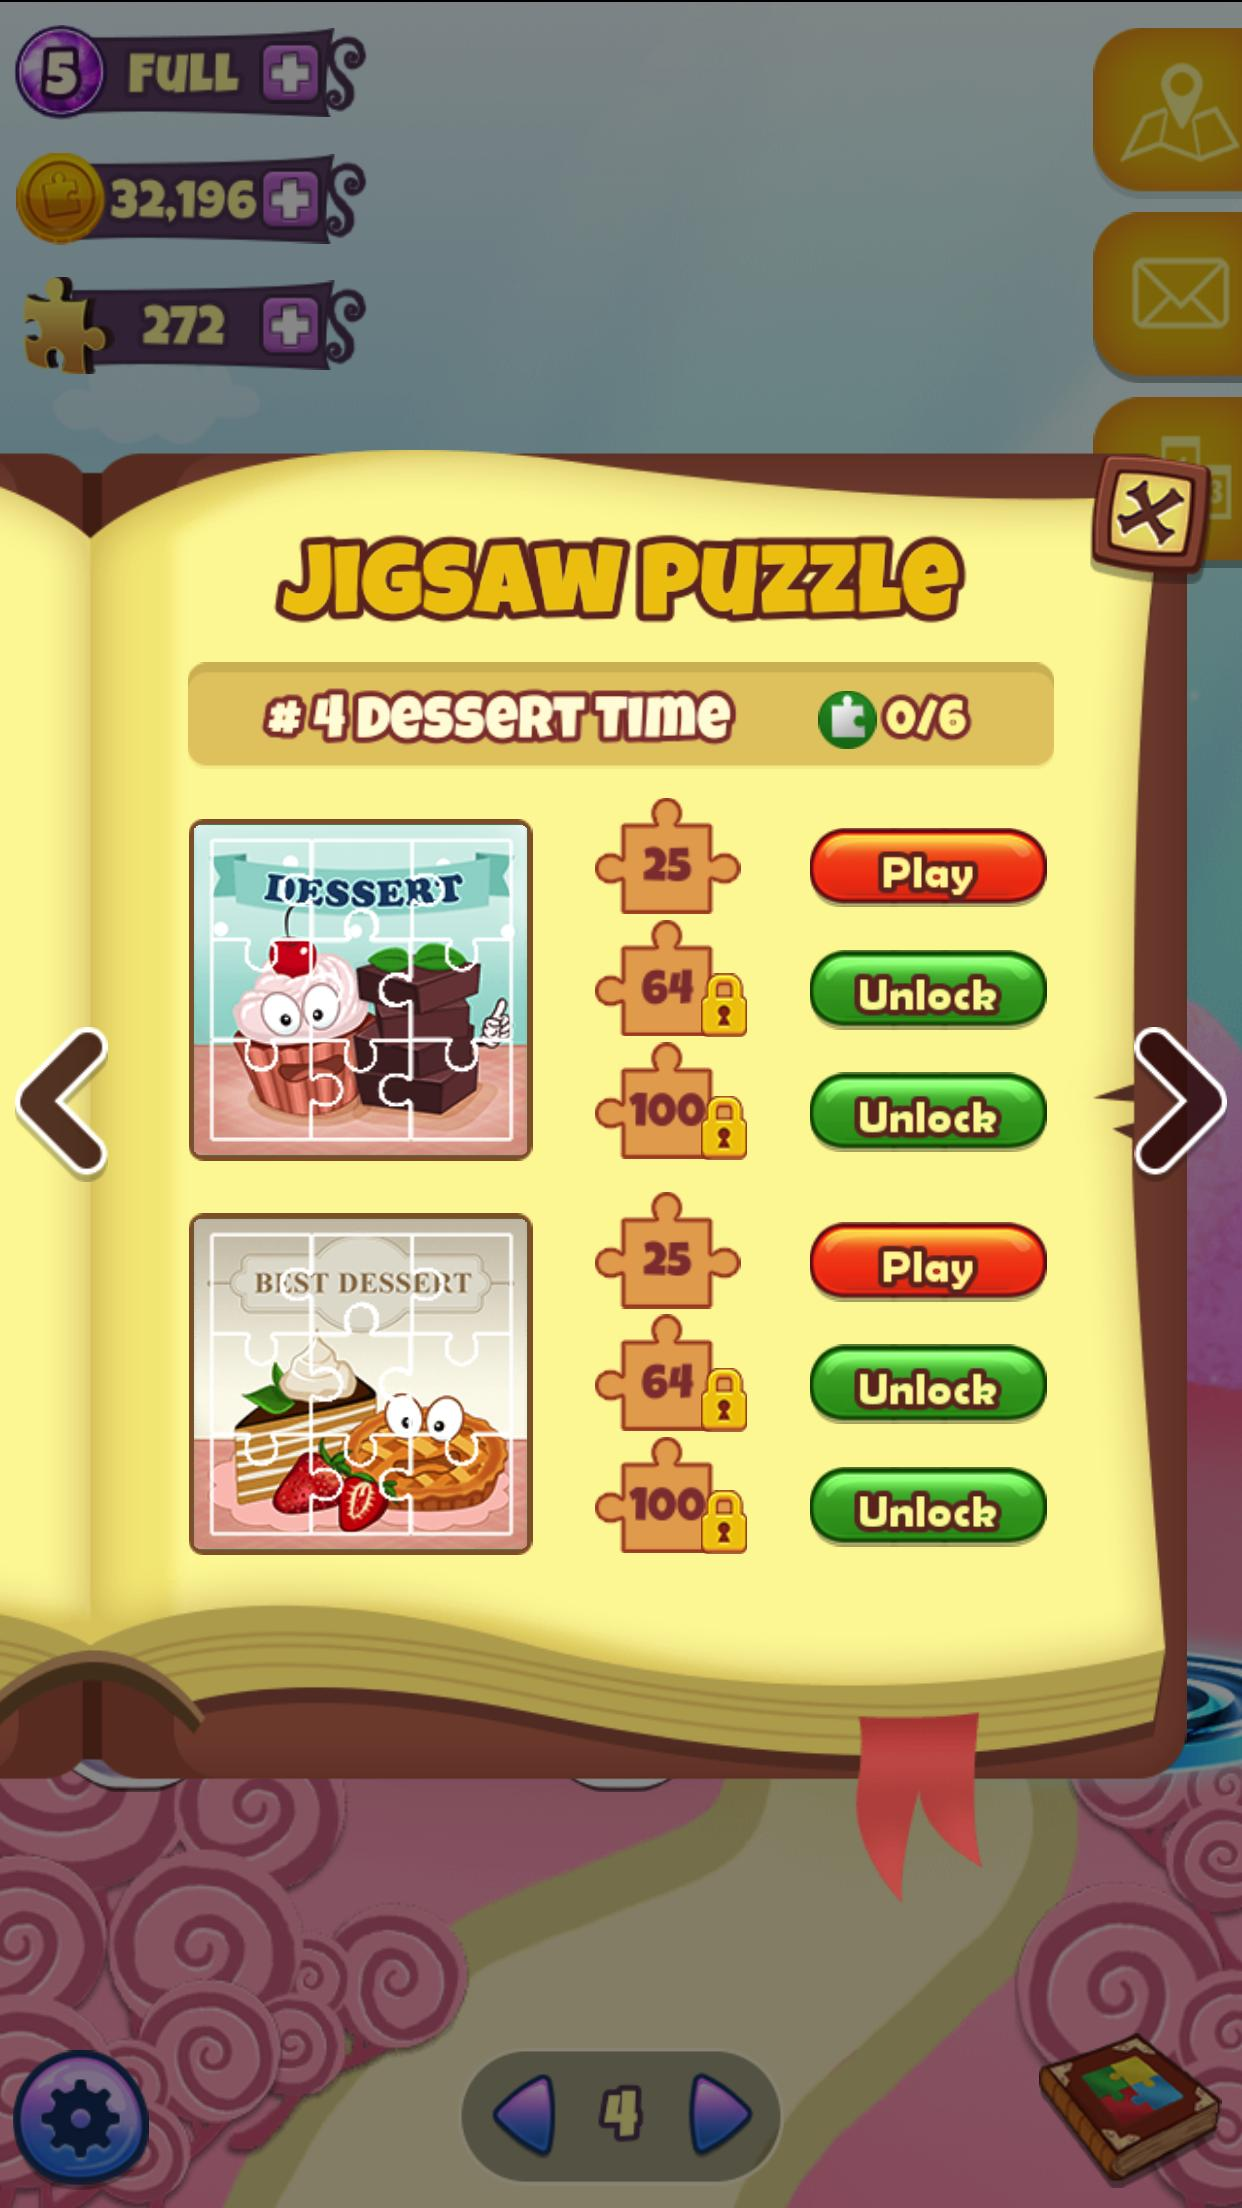 The Mystic Puzzland - Griddlers & Nonogram Puzzles 1.0.26 Screenshot 4